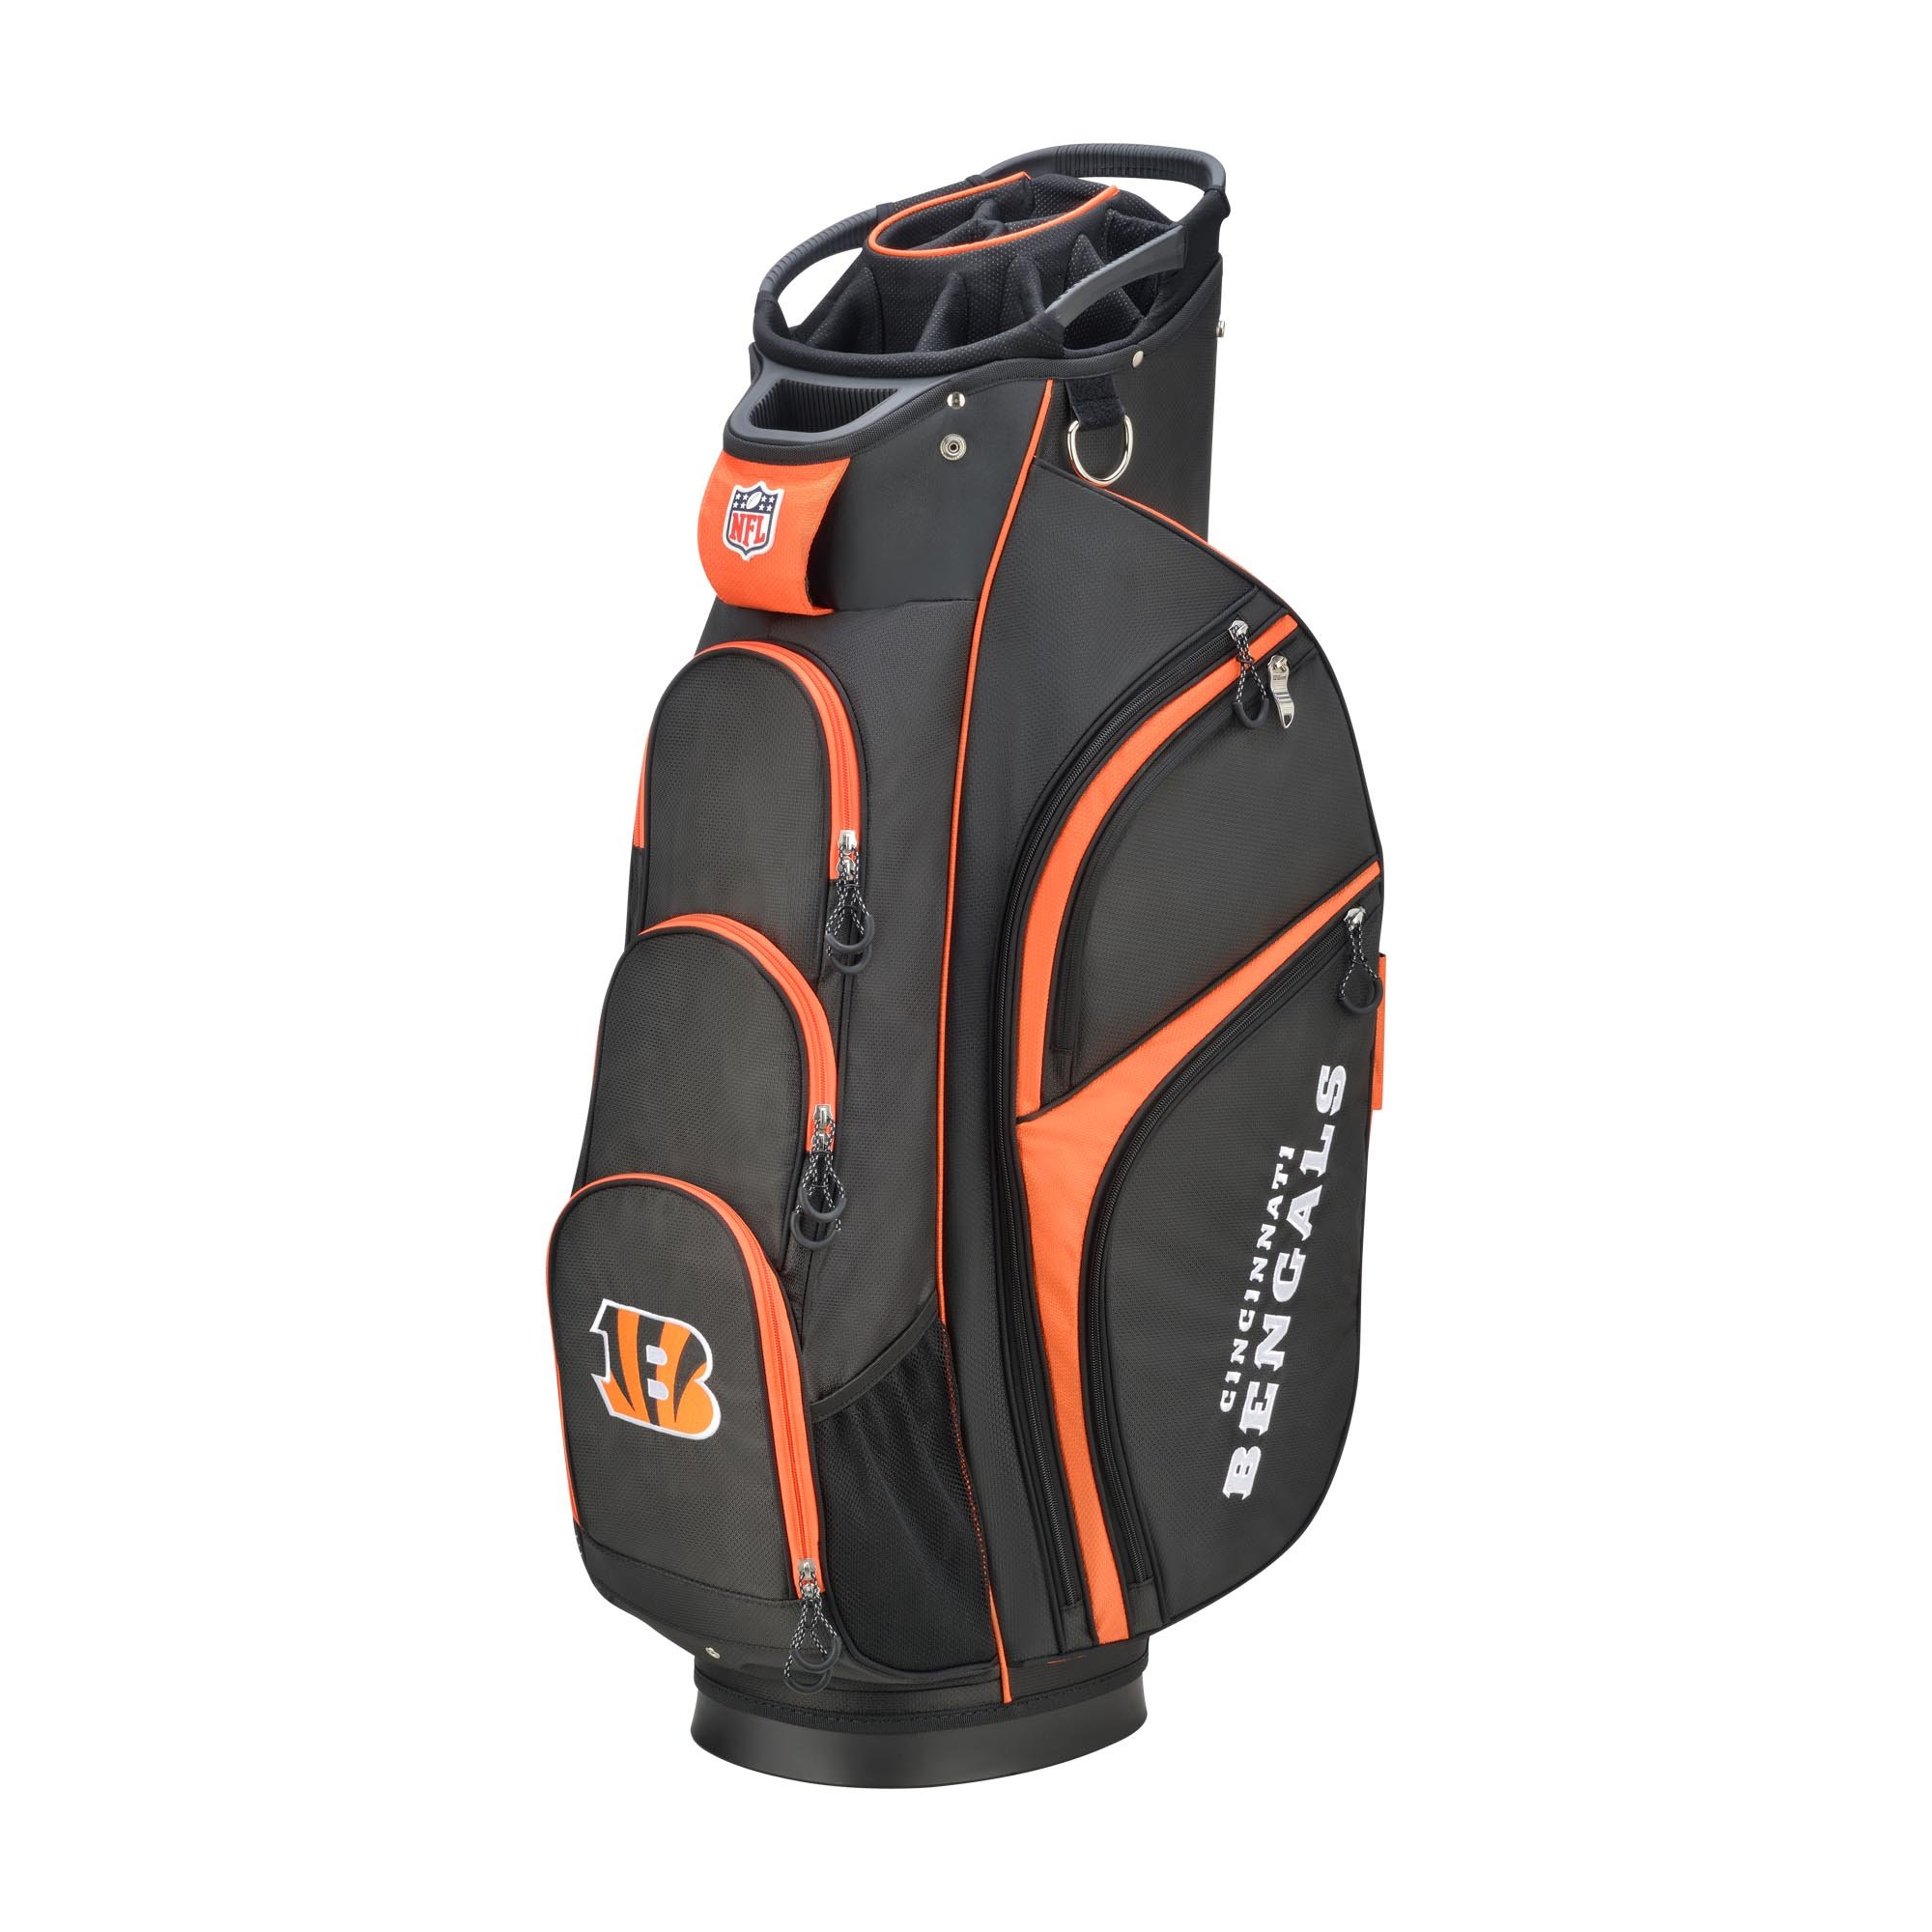 Wilson 2018 NFL Golf Cart Bag, Cincinnati Bengals by Wilson